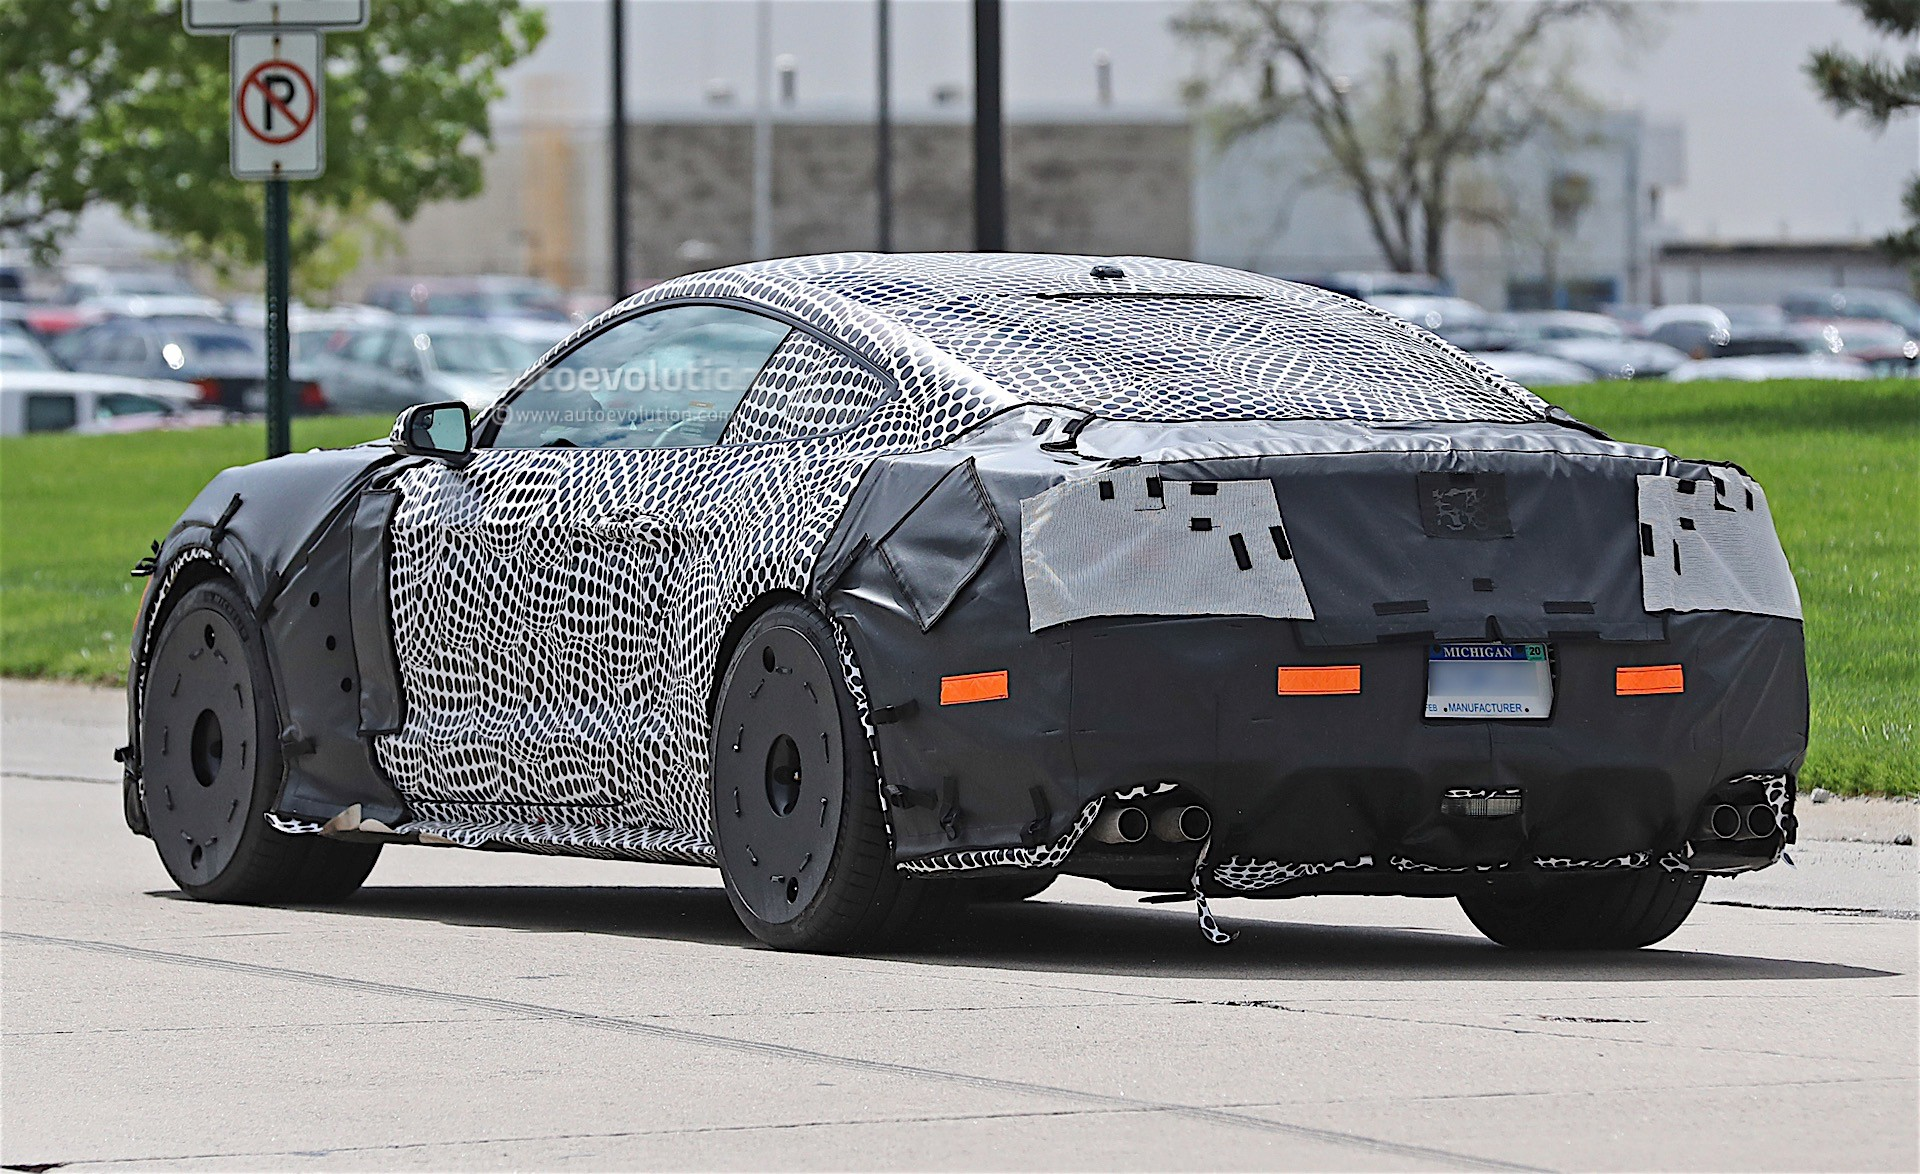 2019 shelby mustang gt500 prototype